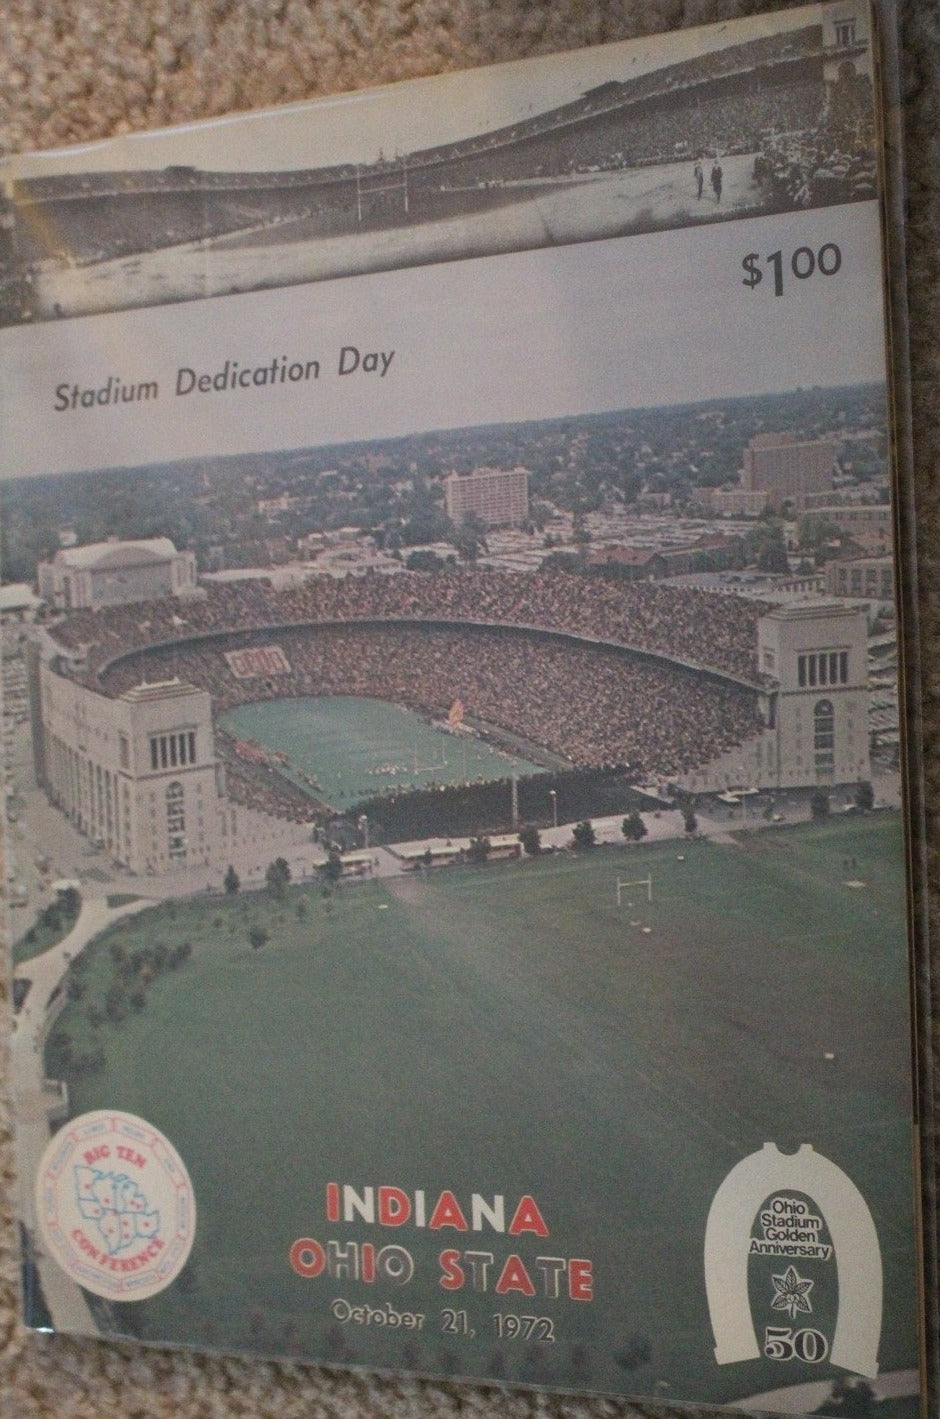 1972 Indiana vs Ohio State Football Program, OSU Stadium Dedication Day - Vintage Indy Sports